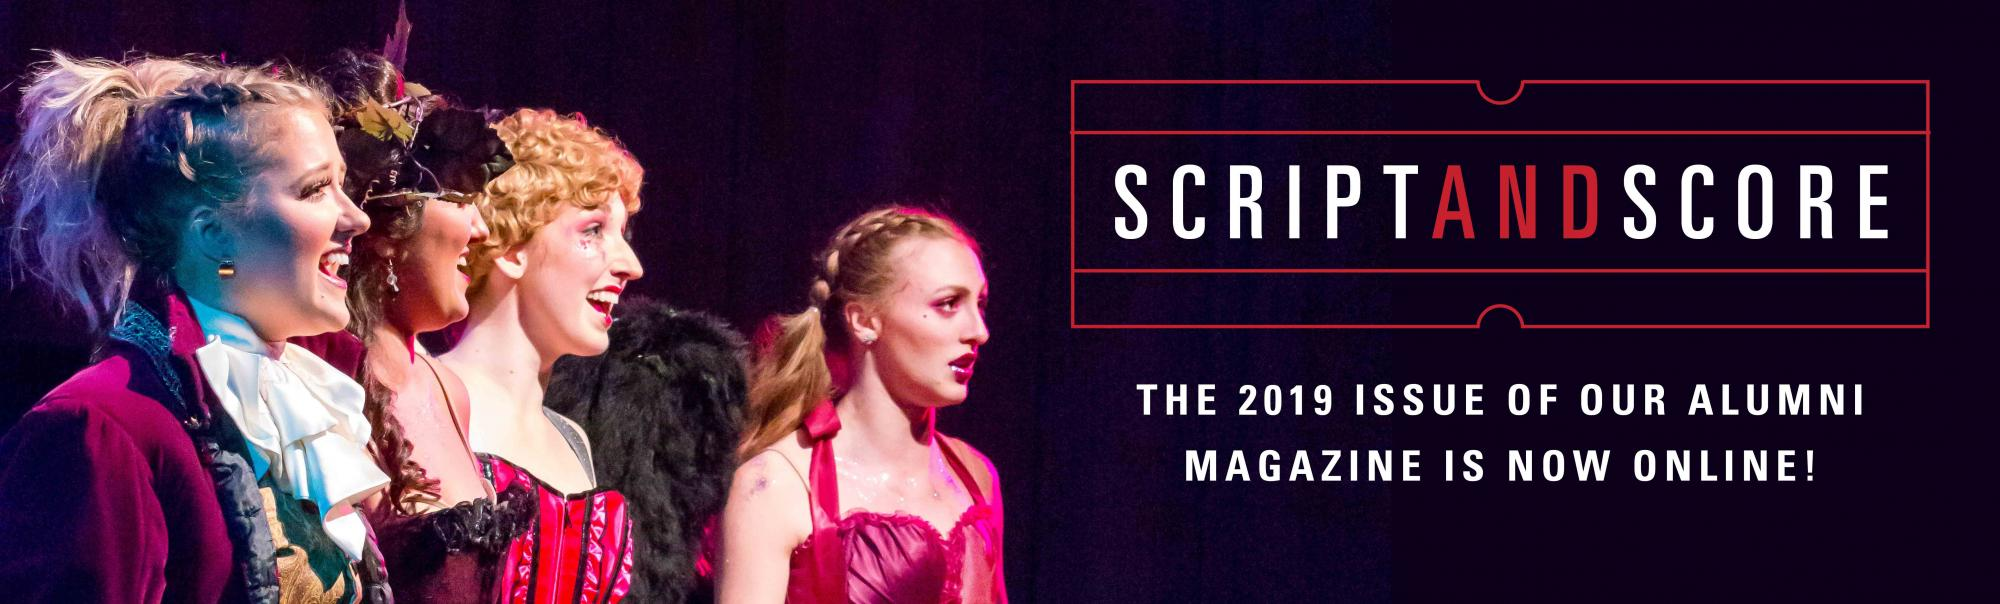 Script and Score magazine